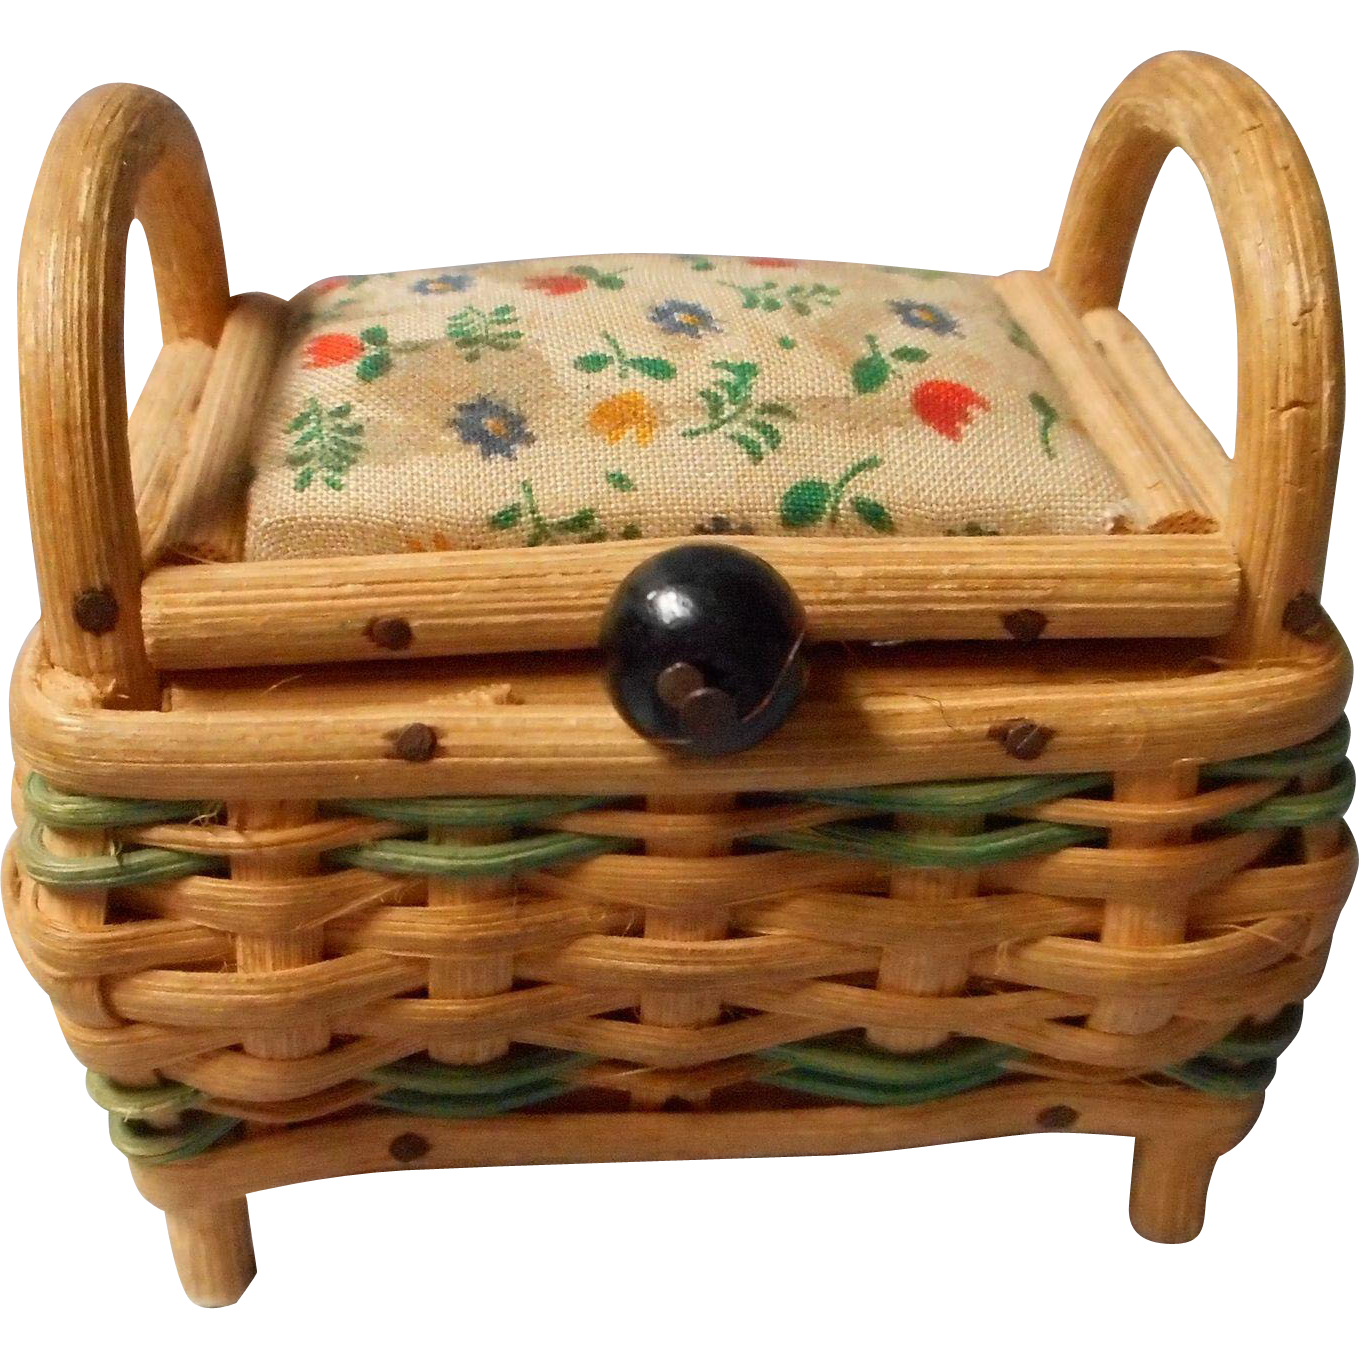 Vintage Wicker Sewing Basket 103